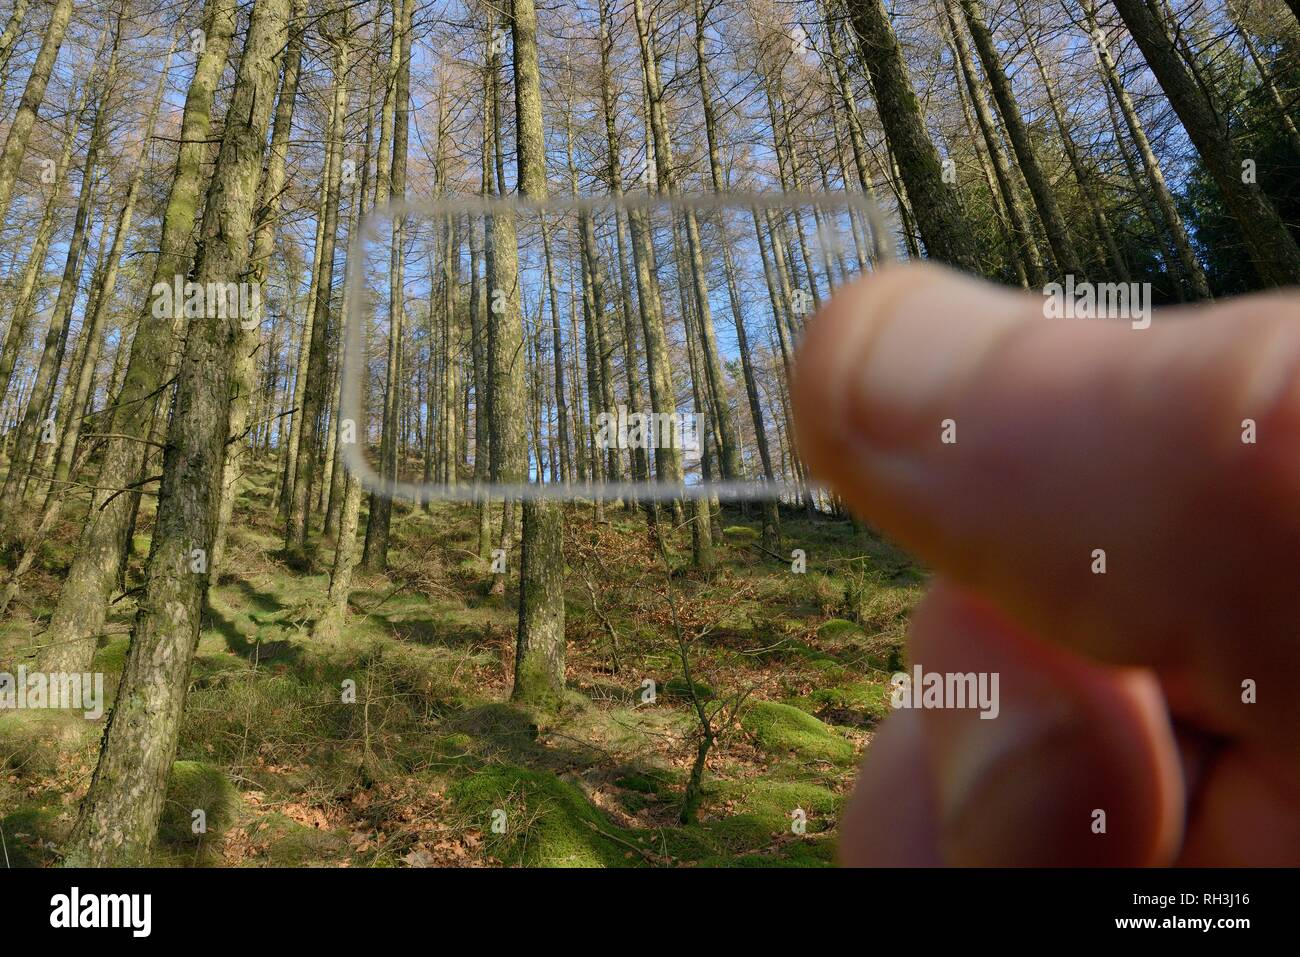 Wedge prism relascope used to record the density of trees in a coniferous plantation, Cambrian Mountains, Wales, UK - Stock Image